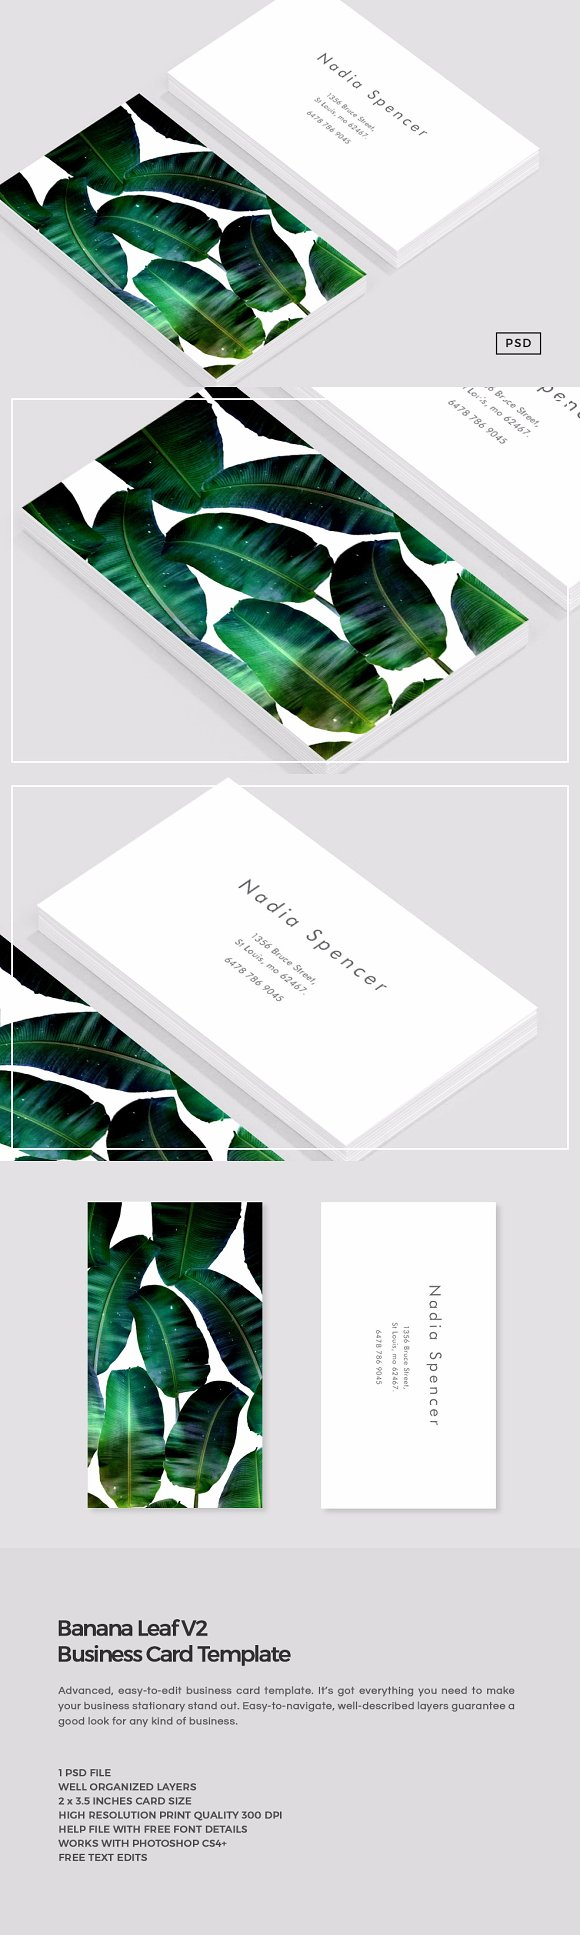 Banana leaf business card template business card templates banana leaf business card template business card templates creative market reheart Gallery